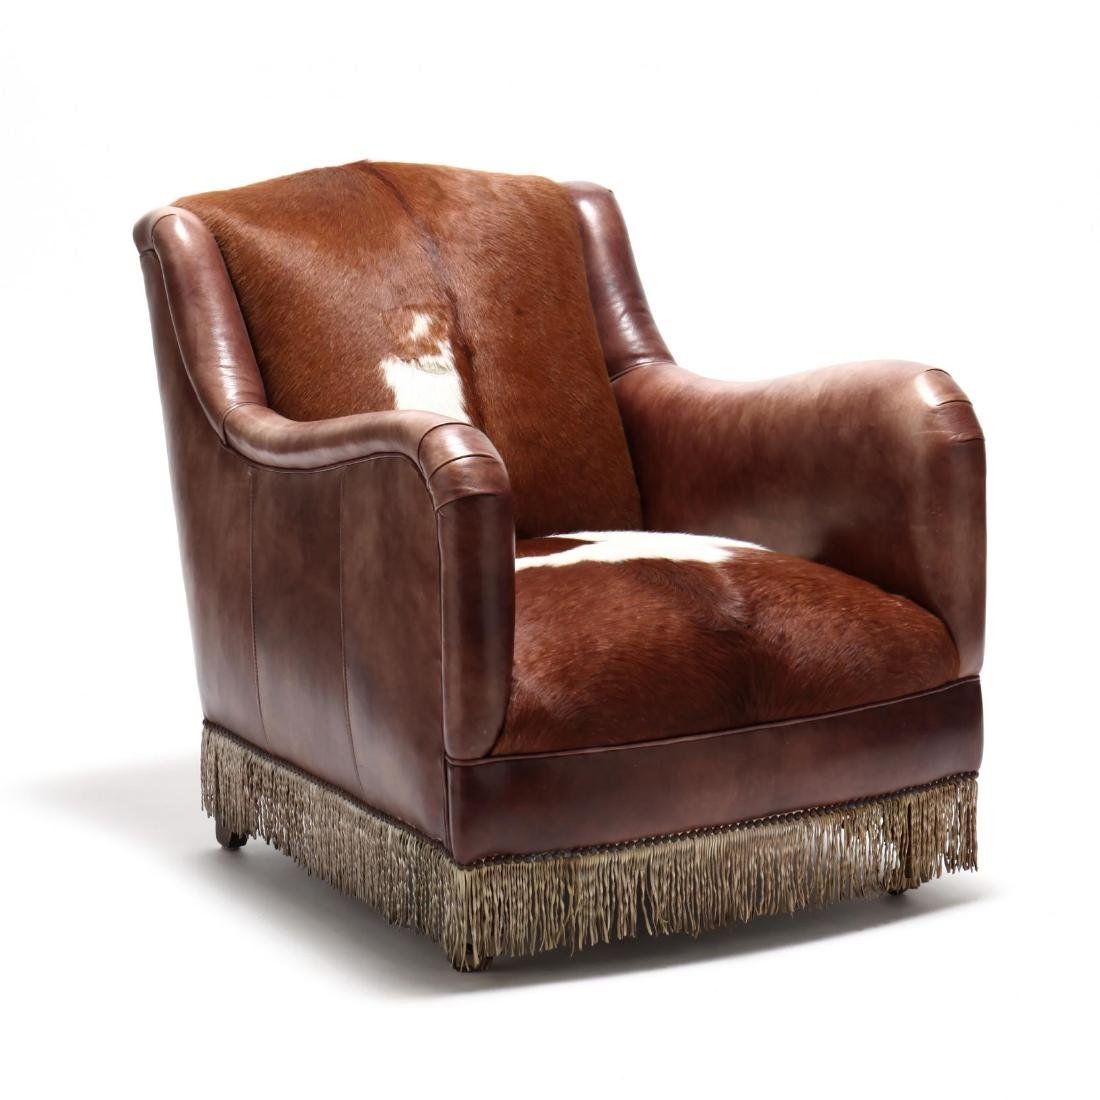 Southwestern Leather Club Chair